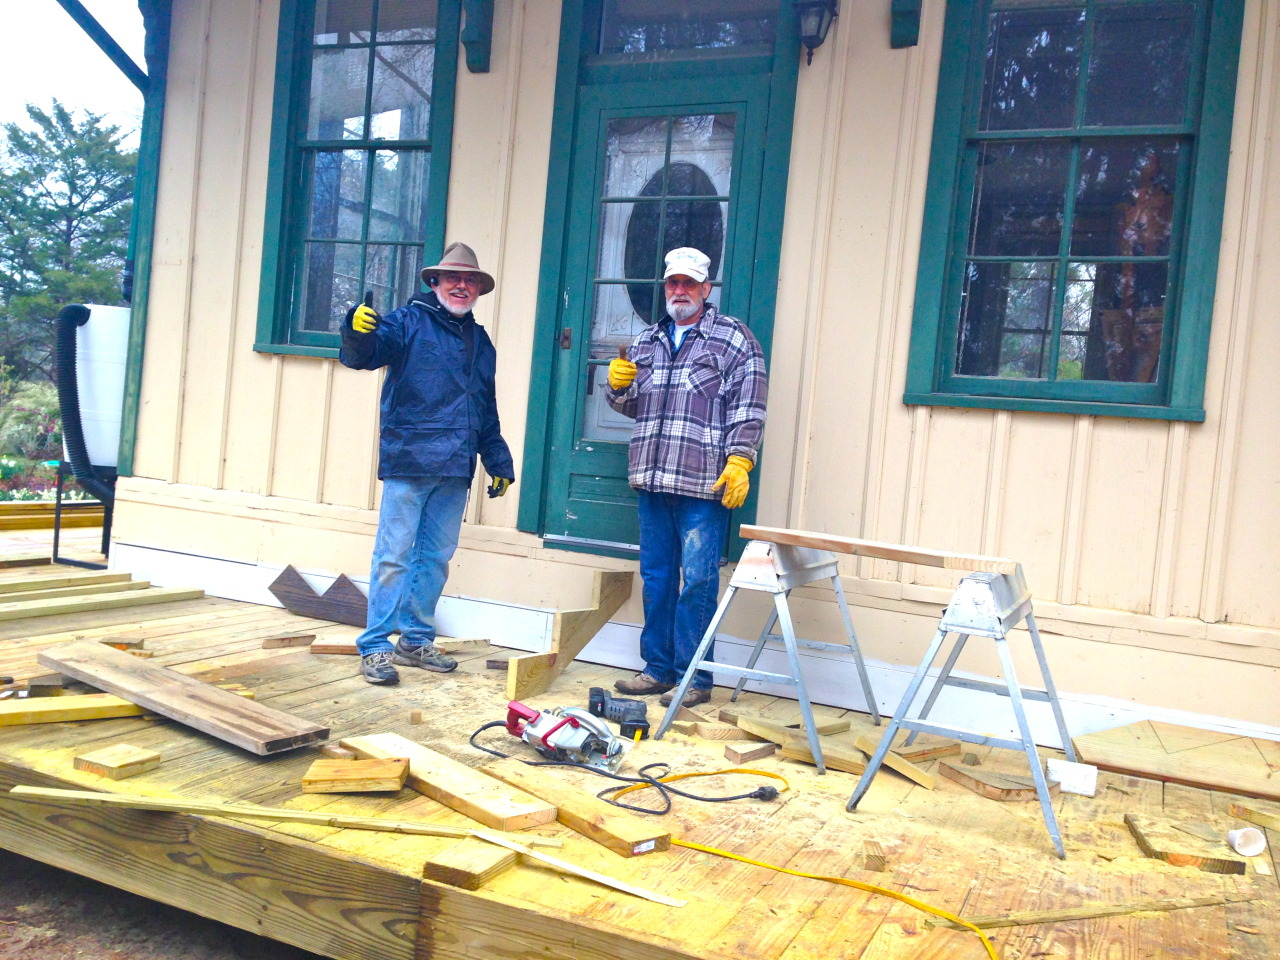 Our heroes, Charlie and Don deck the depot - last day.